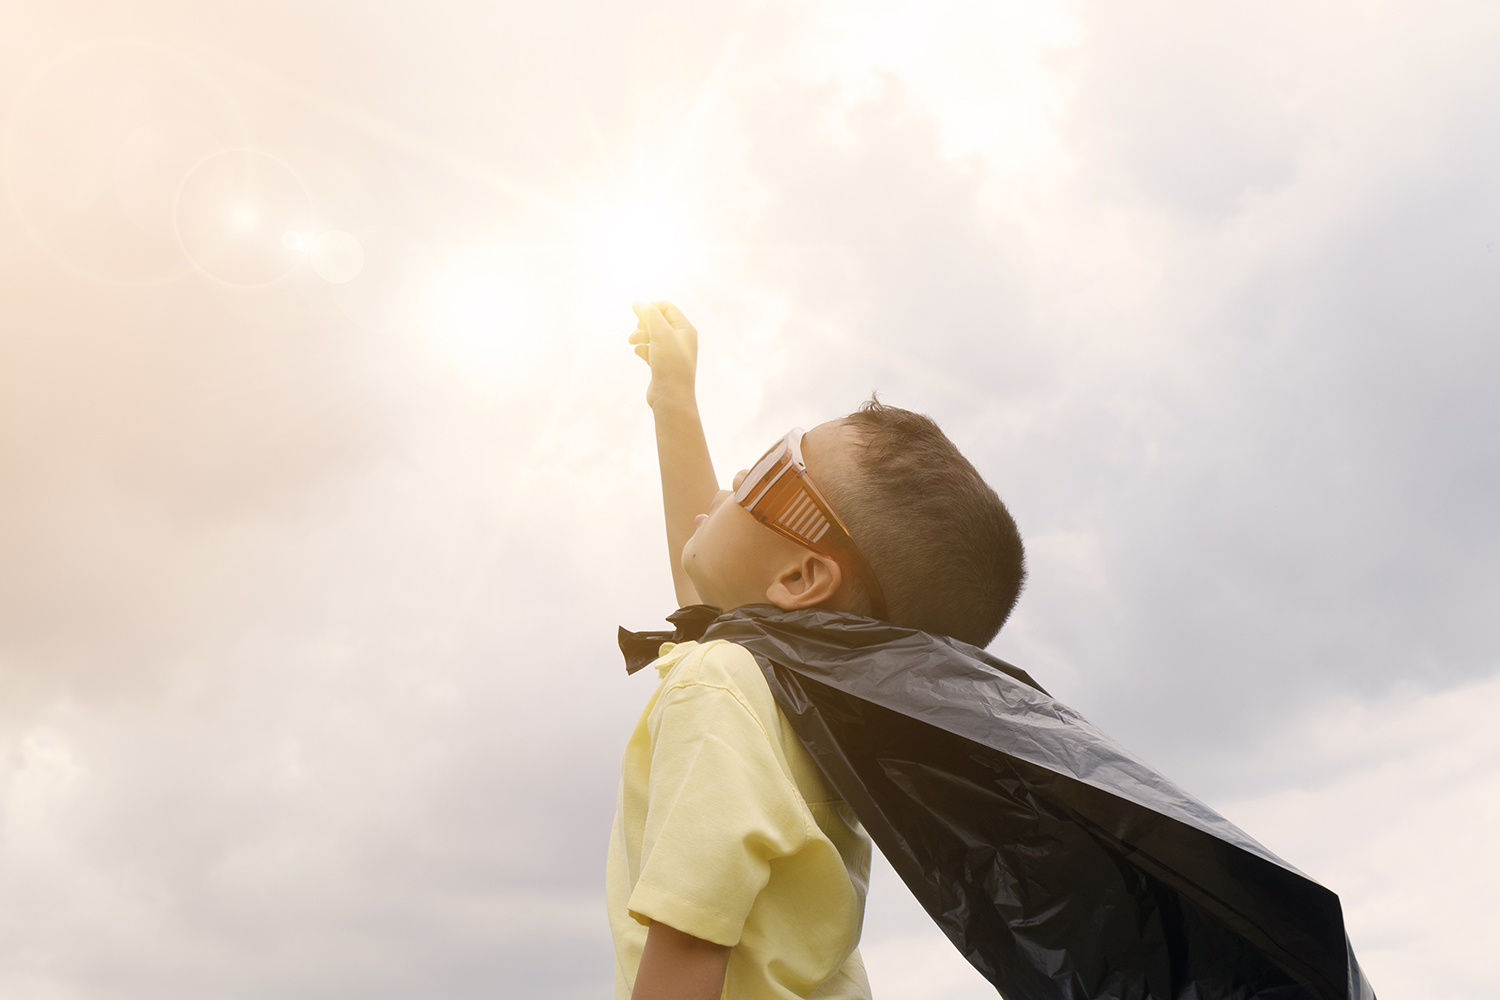 cybersecurity in oil & gas industry